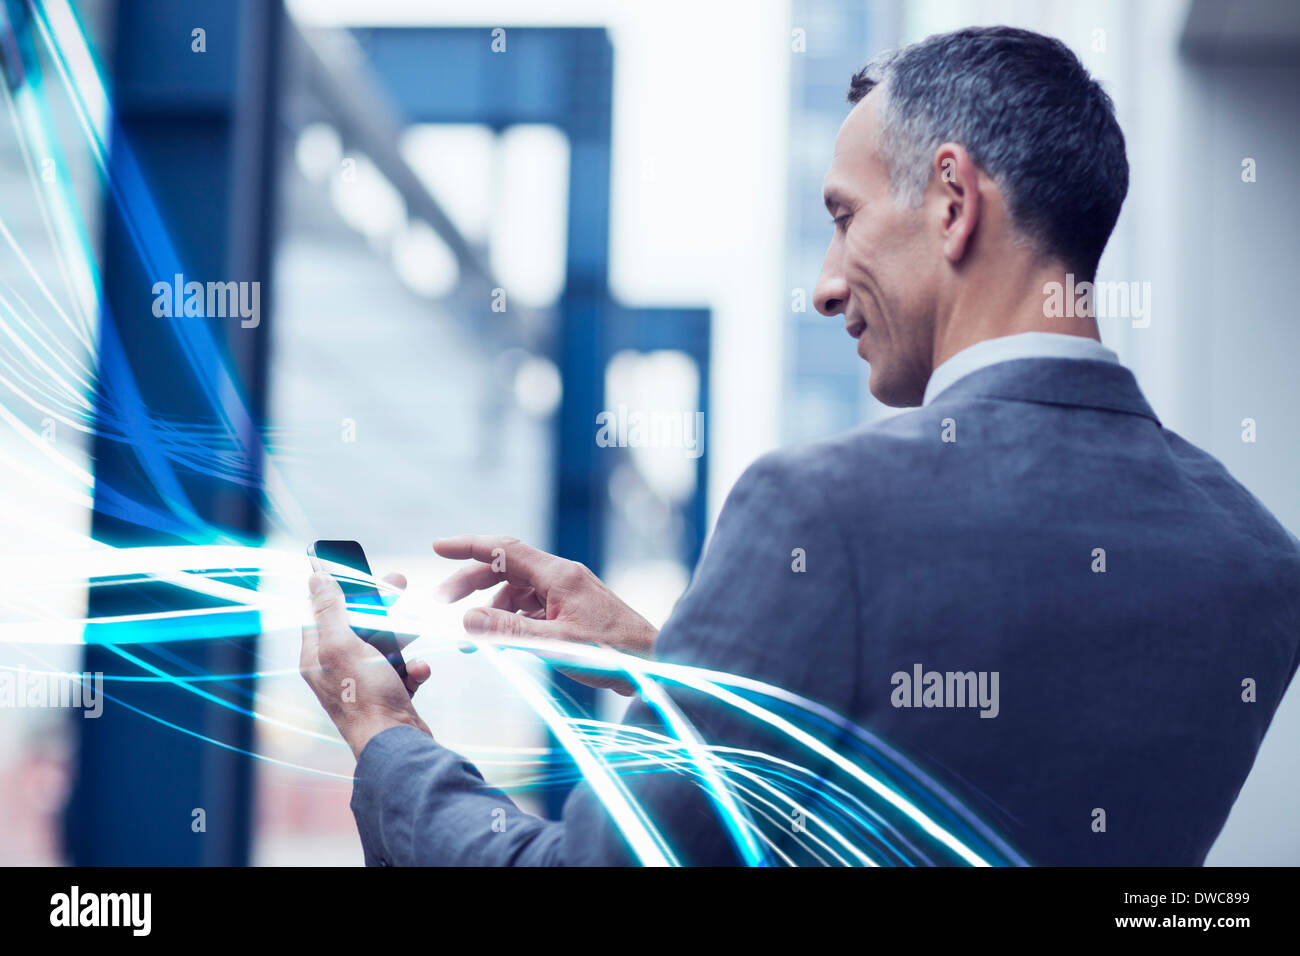 Waves of blue light and businessman using touchscreen on smartphone - Stock Image